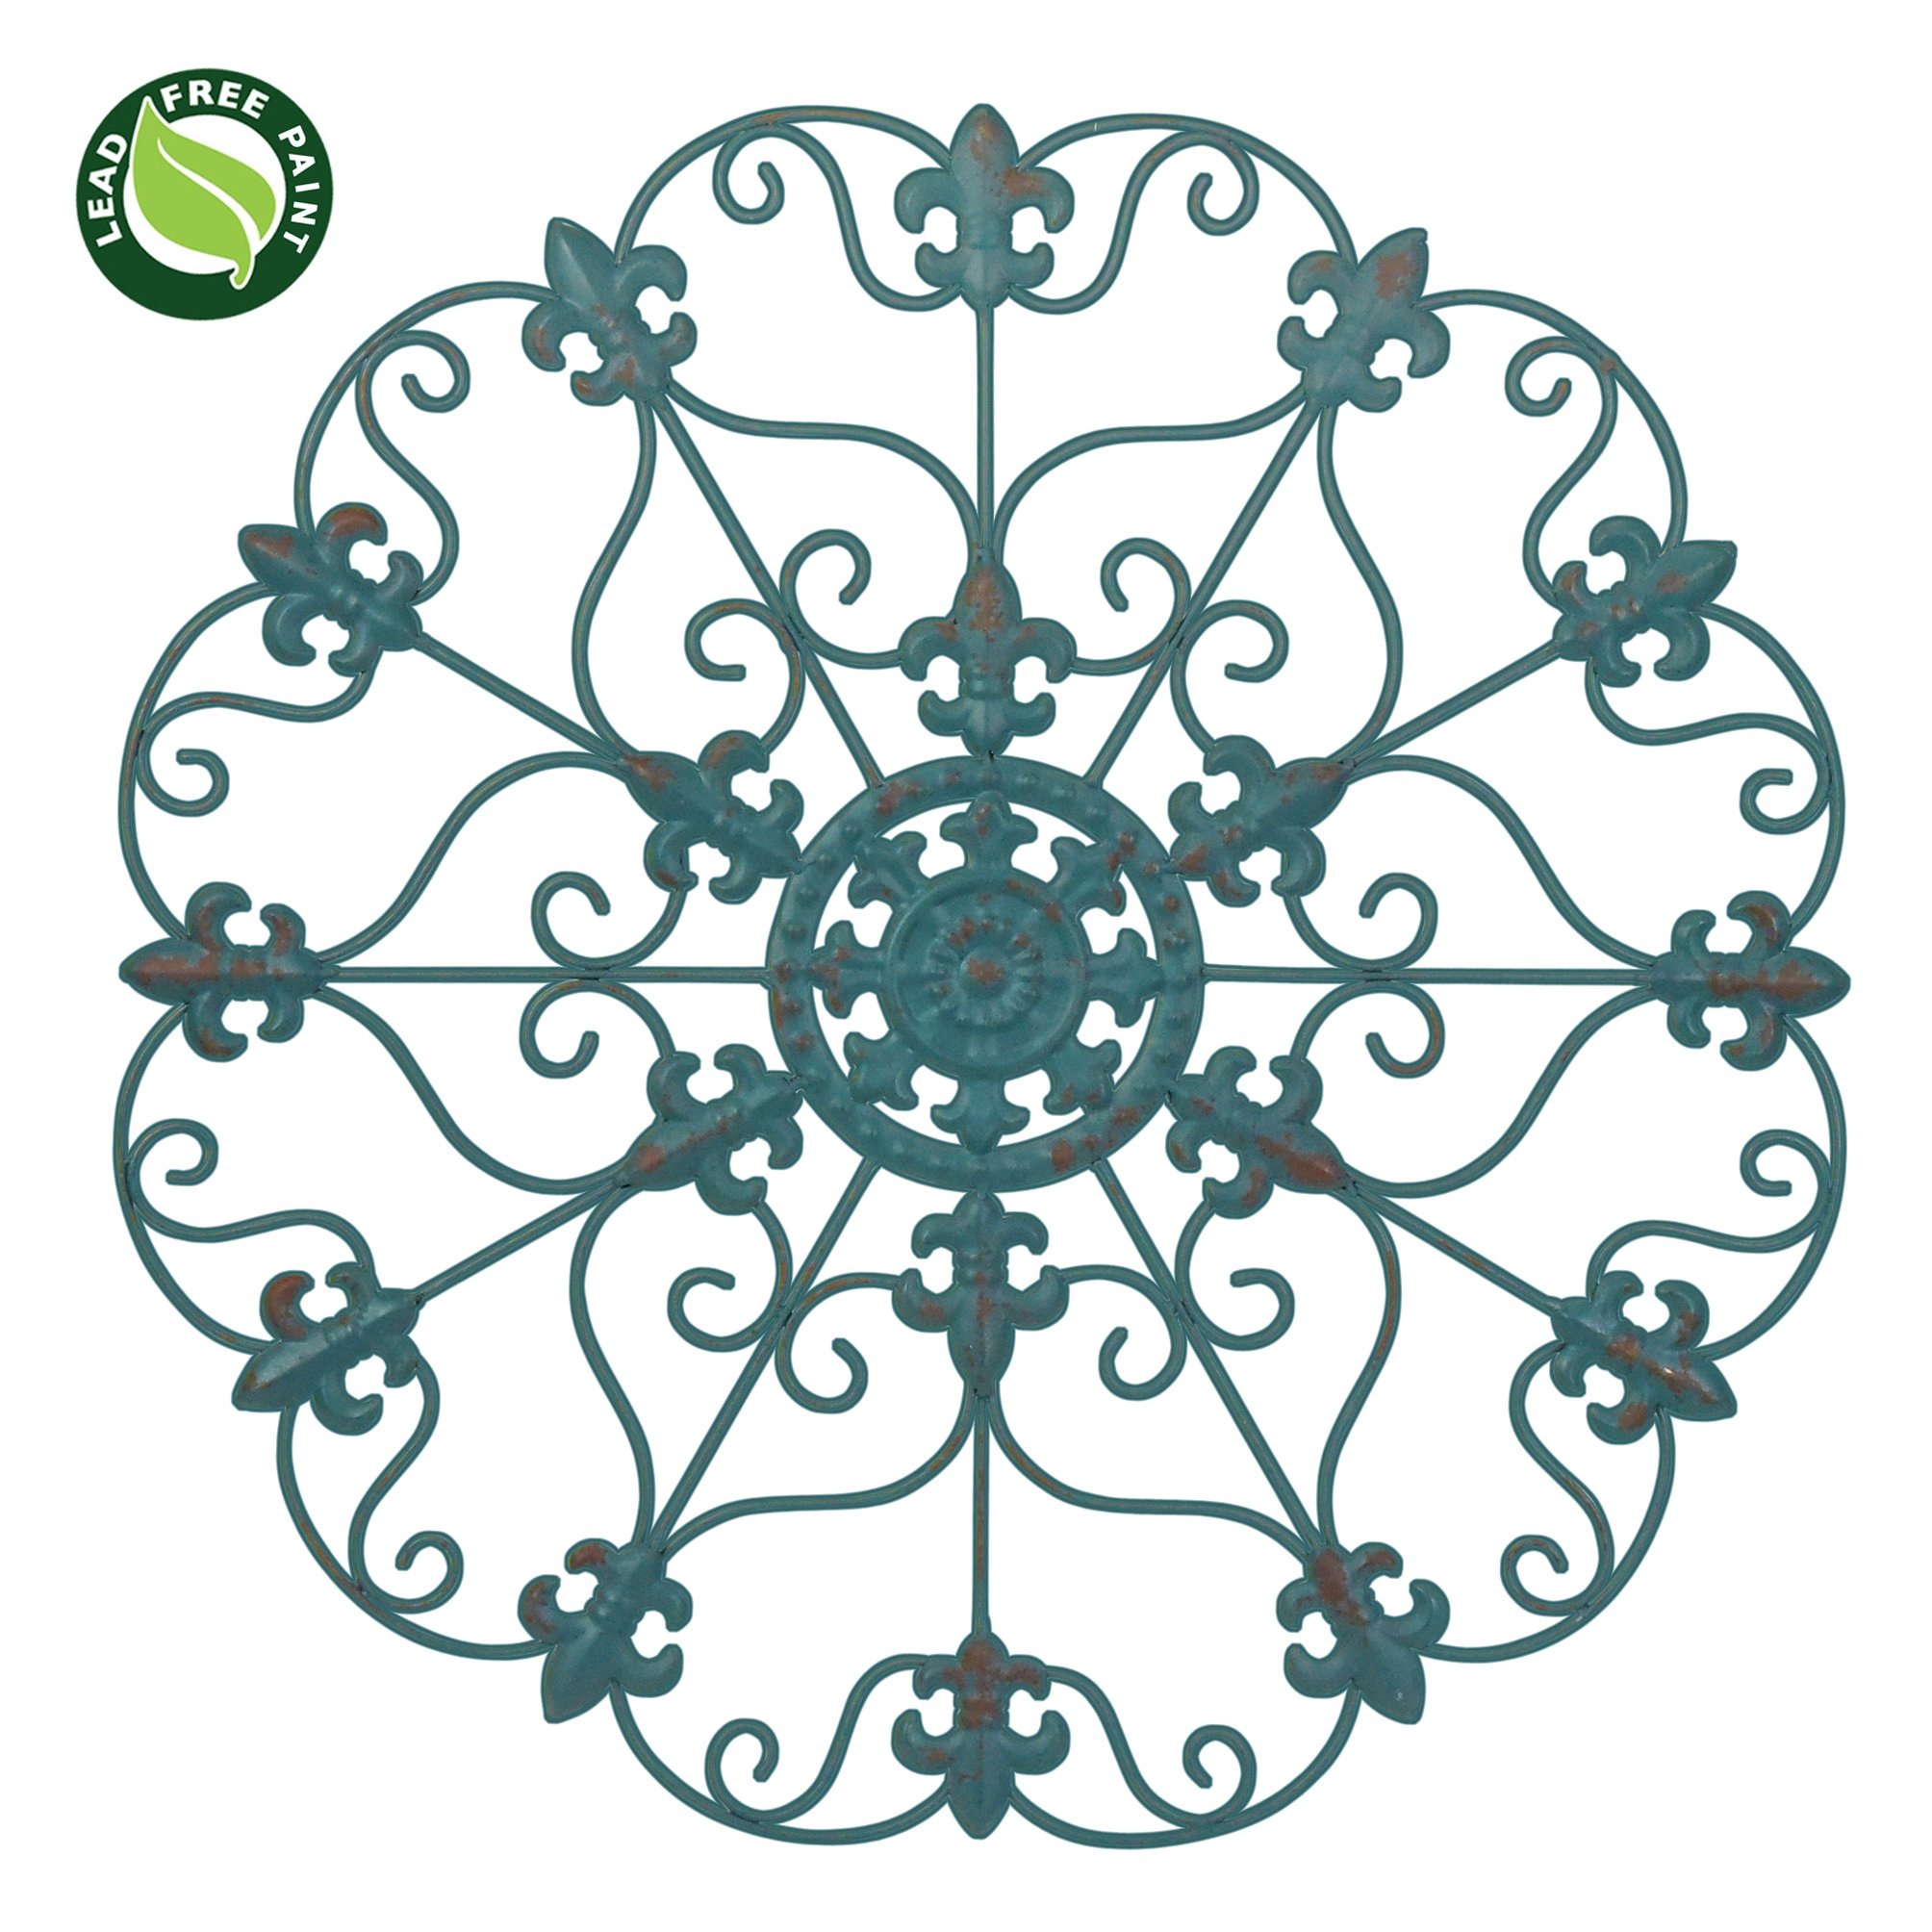 NEW! 24'' Hand Made Iron Wall Medallion, Home, Room Decoration, Home Decor 100% Lead Free Paint, Teal Color by BindMaster